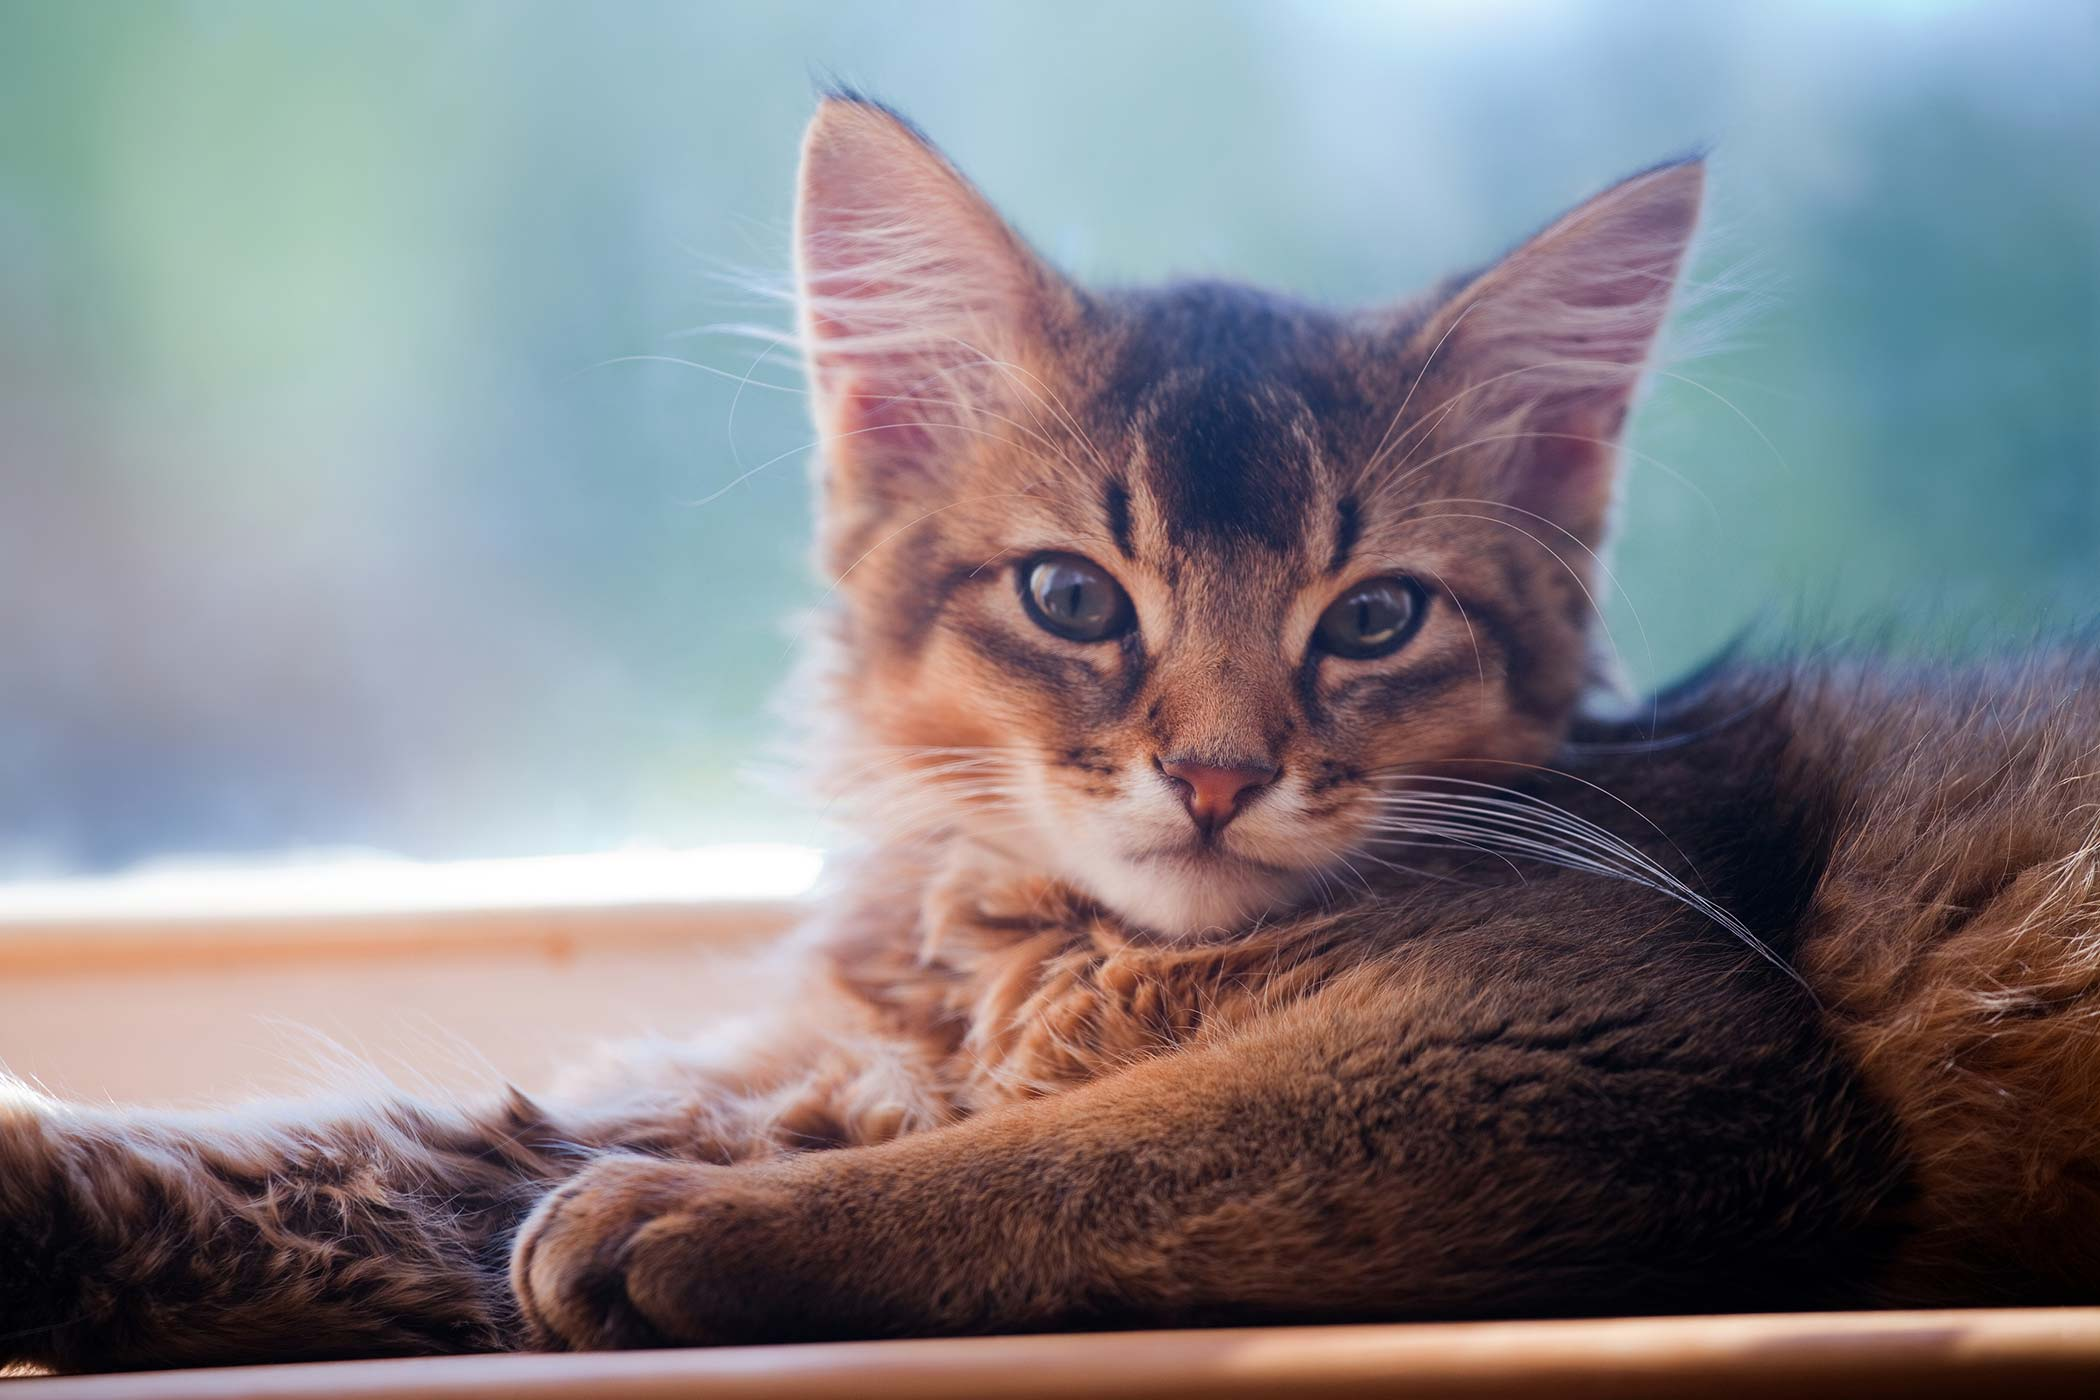 Clotting Disorders of the Platelets in Cats